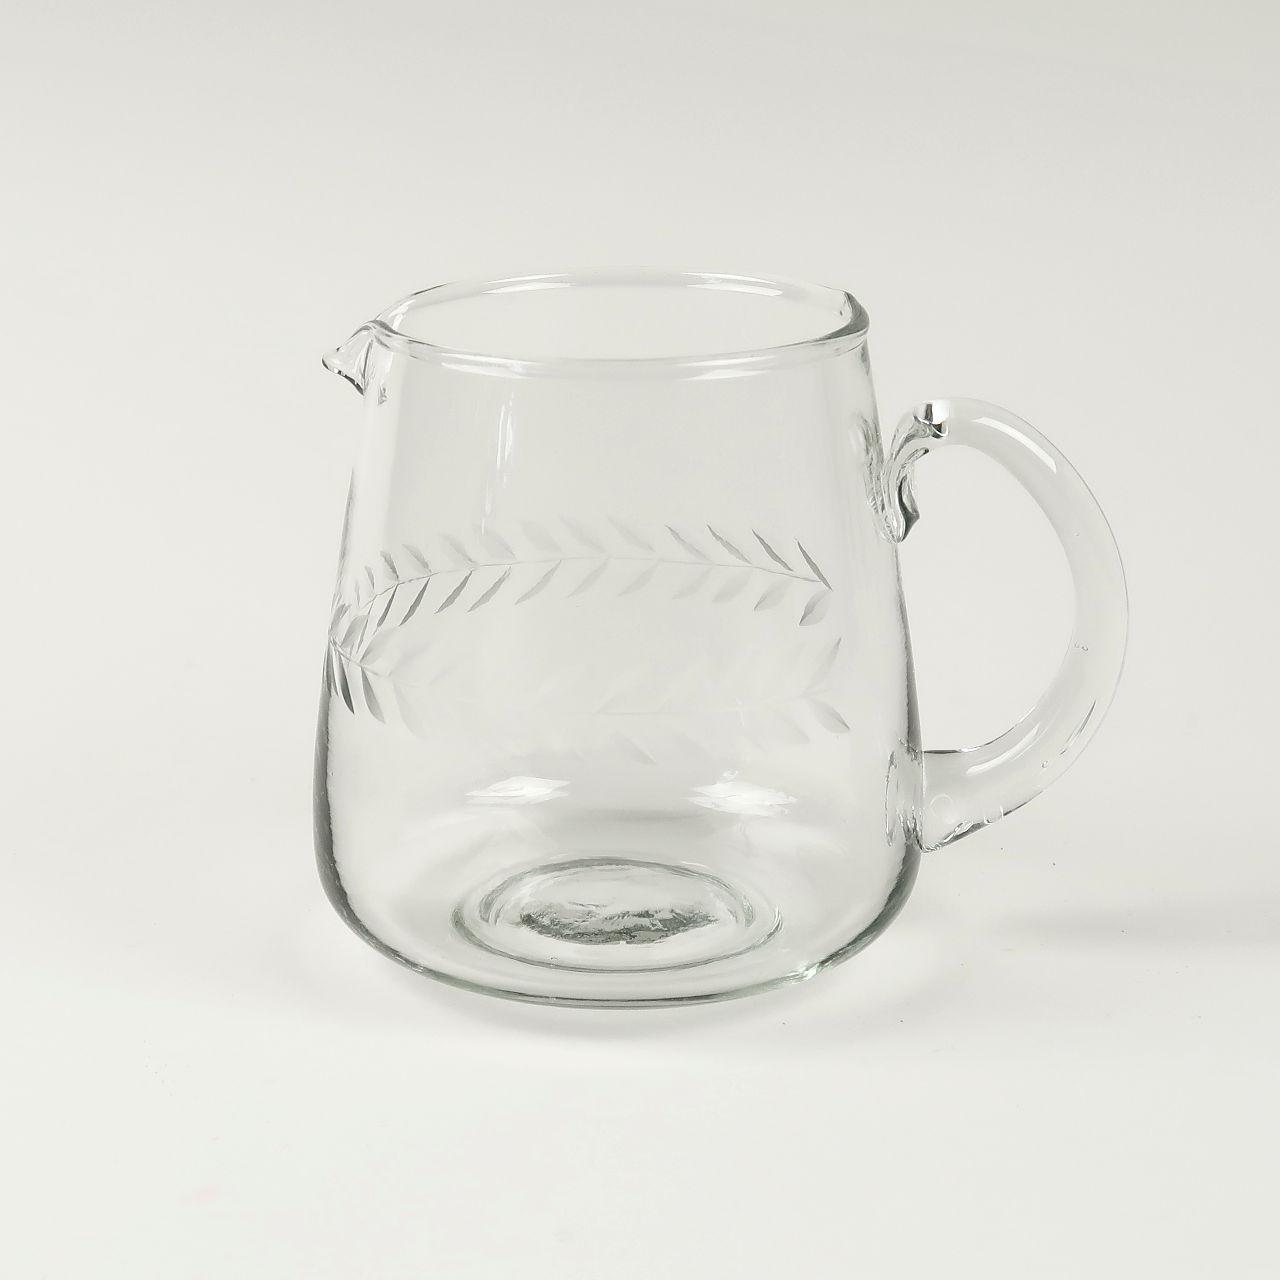 Glass Jug with Laurel Leaf Design